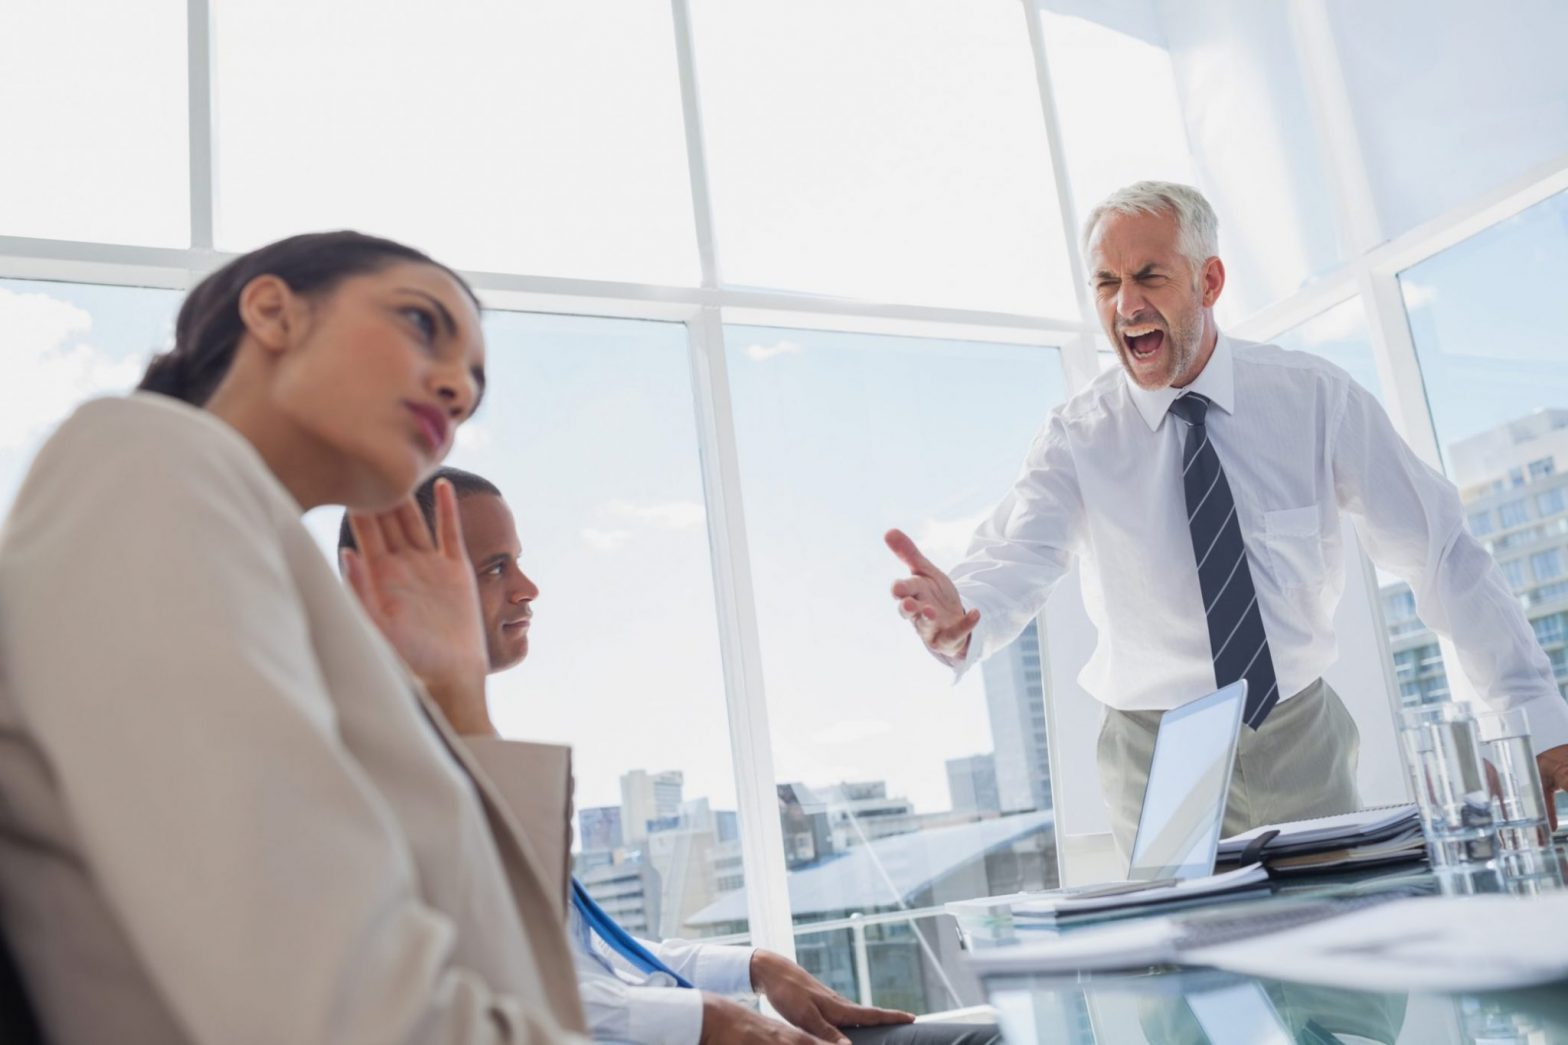 How to Proactively Protect Against Workplace Violence